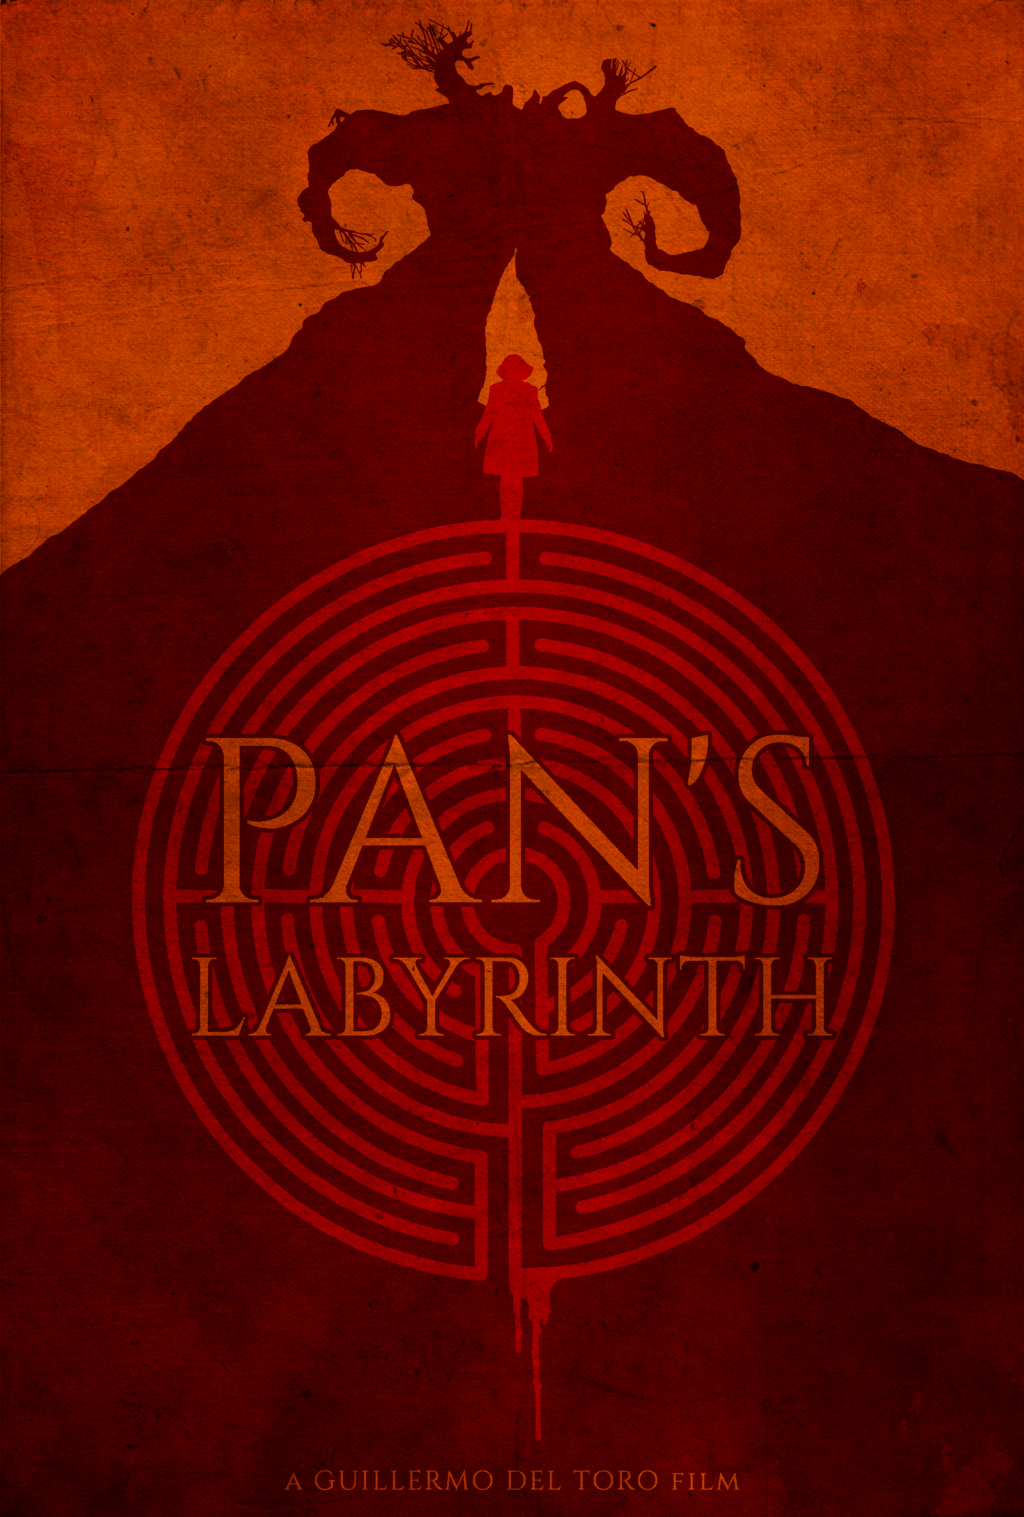 PAN/'S LABYRINTH POSTER A4 A3 A2 A1 CINEMA MOVIE LARGE FORMAT ART DESIGN